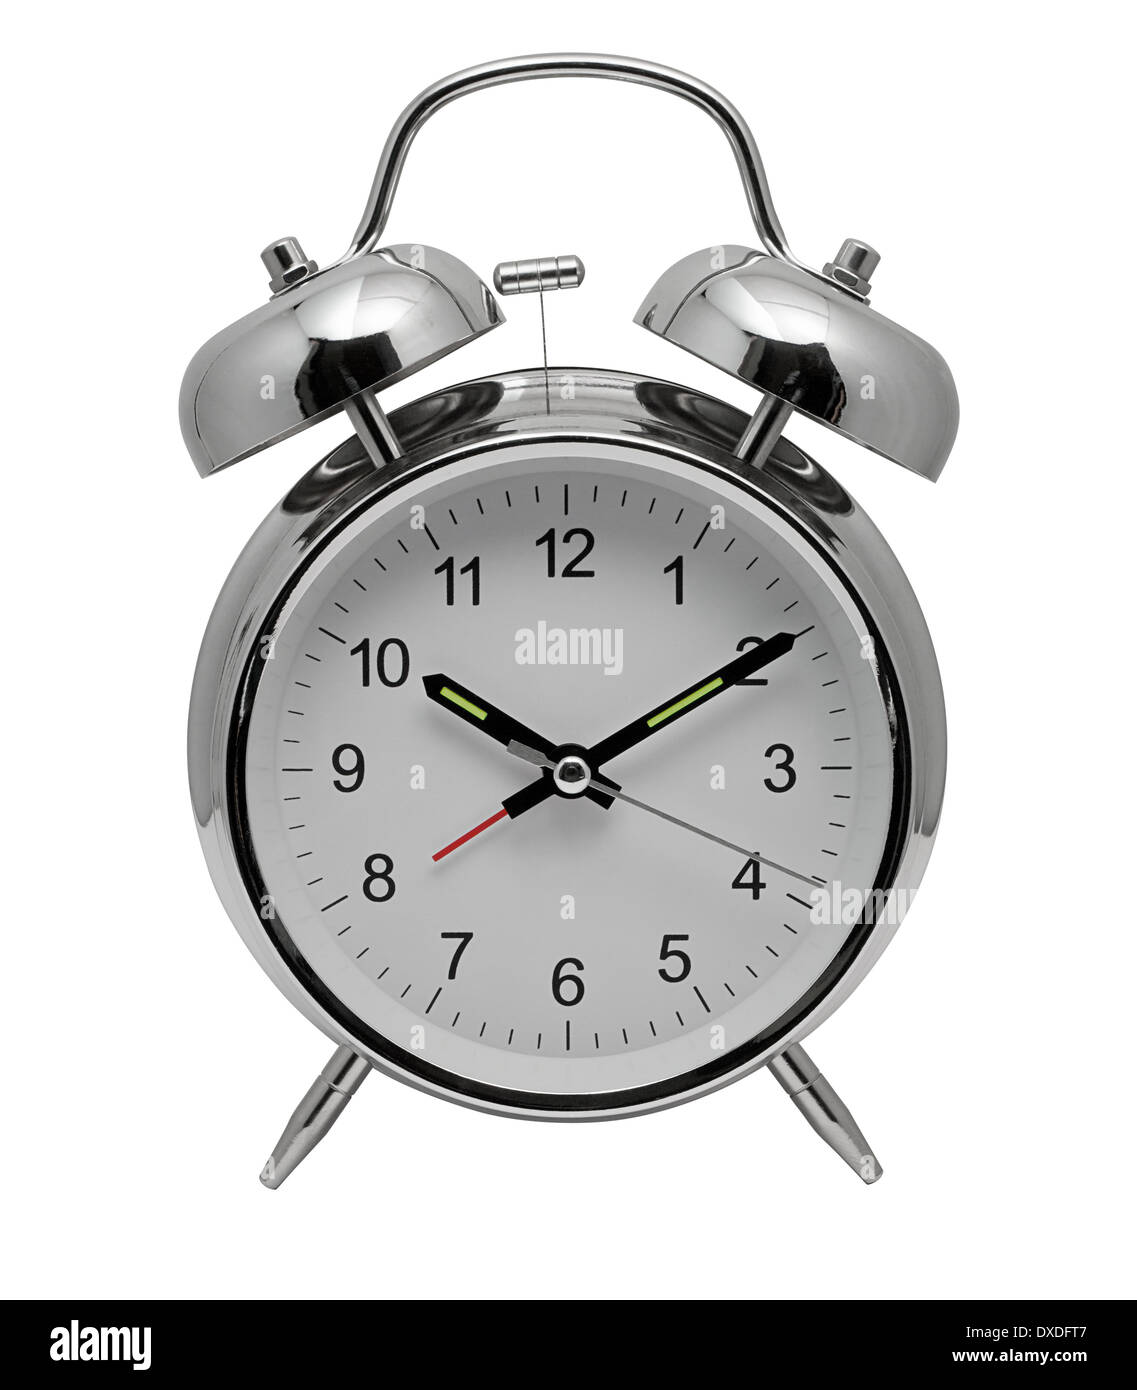 Traditional chrome metal Alarm Clock with bells and ringer on top to awaken you from sleep in the morning Stock Photo